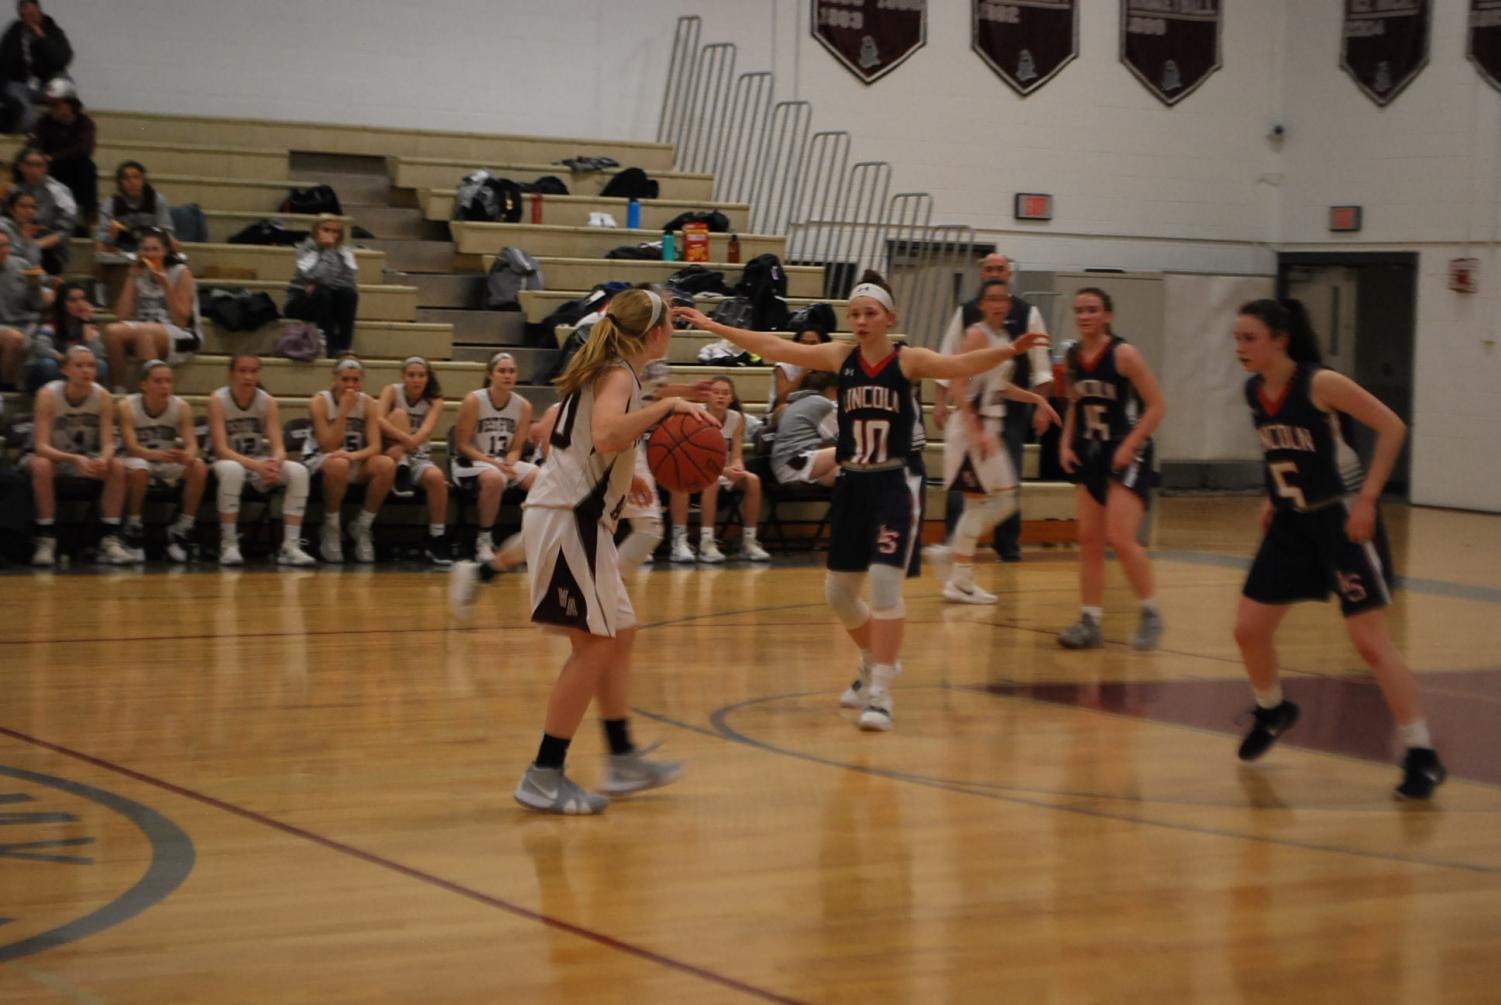 Carly+Davey+dribbles+ball+as+her+teammates+set+up+a+play.